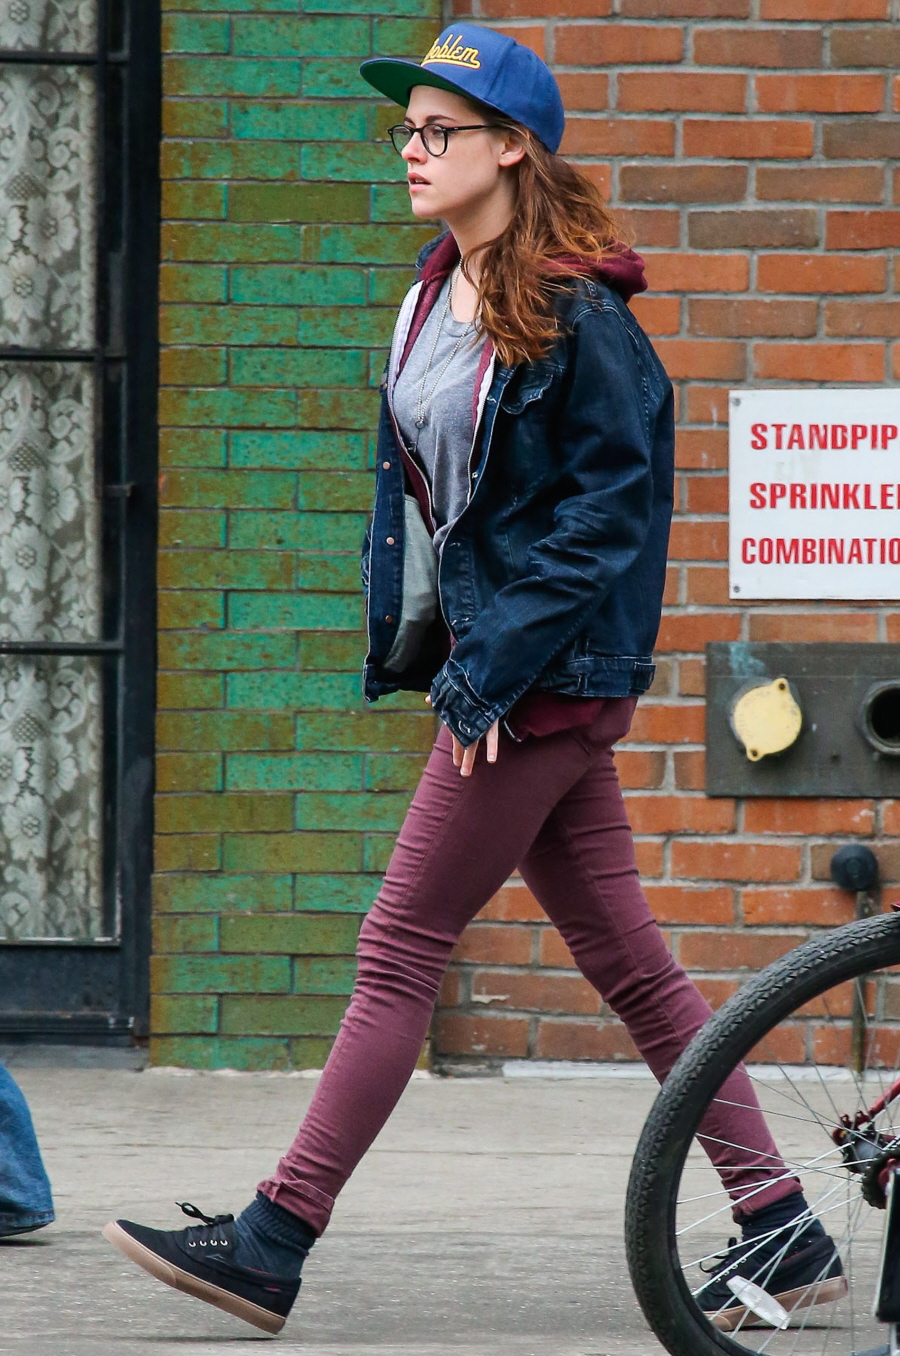 Download this Kristen Stewart Not Pregnant She Gained Weight Purpose For Her picture